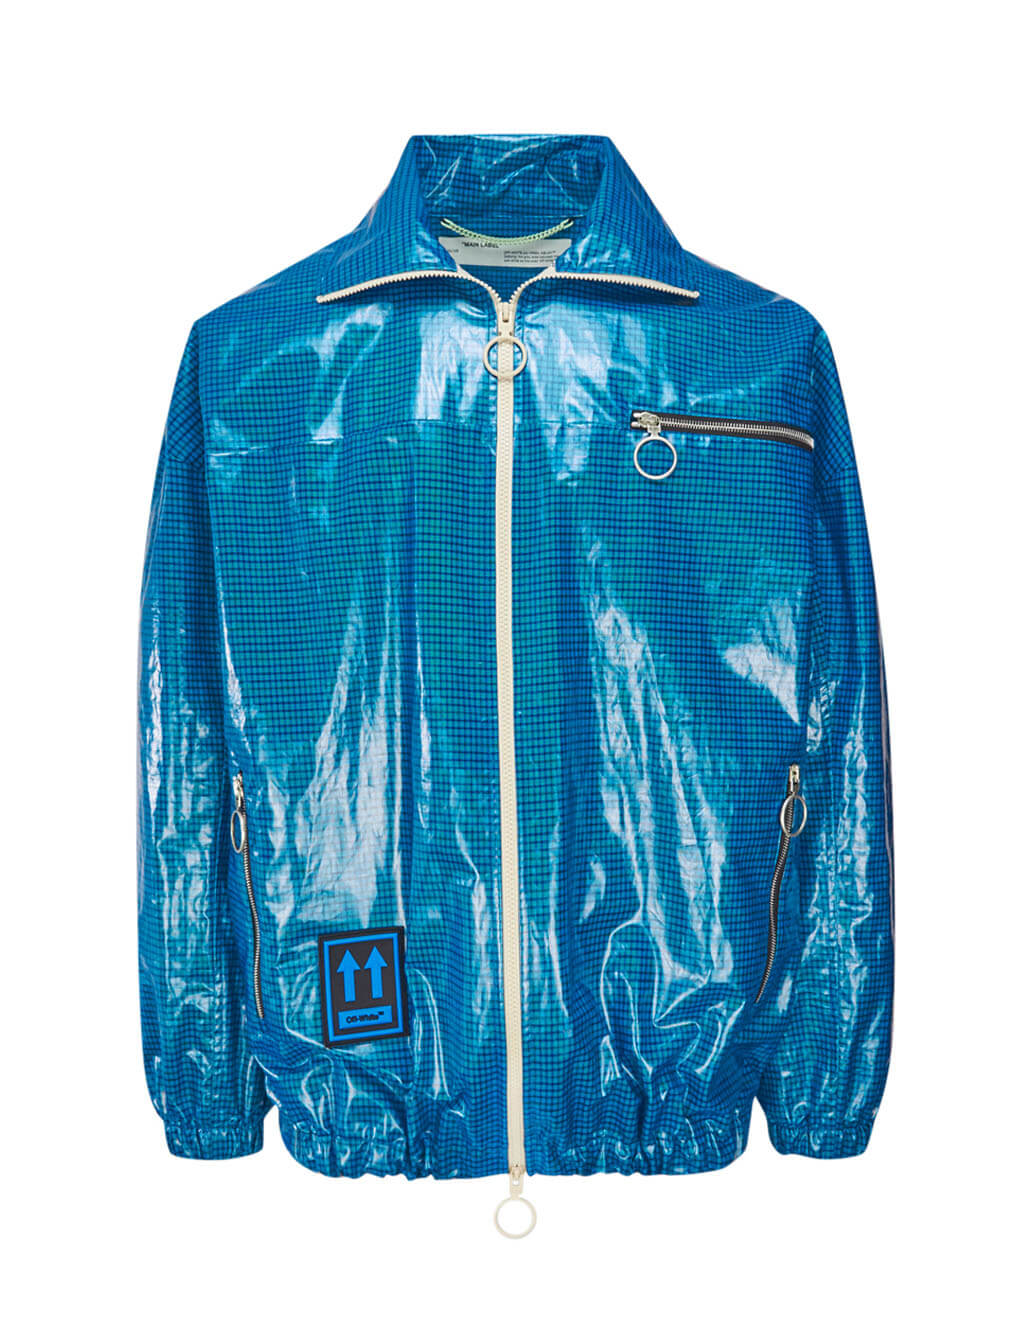 Off-White Men's Giulio Fashion Blue High-Shine Anorak OMEA186E19E120023000